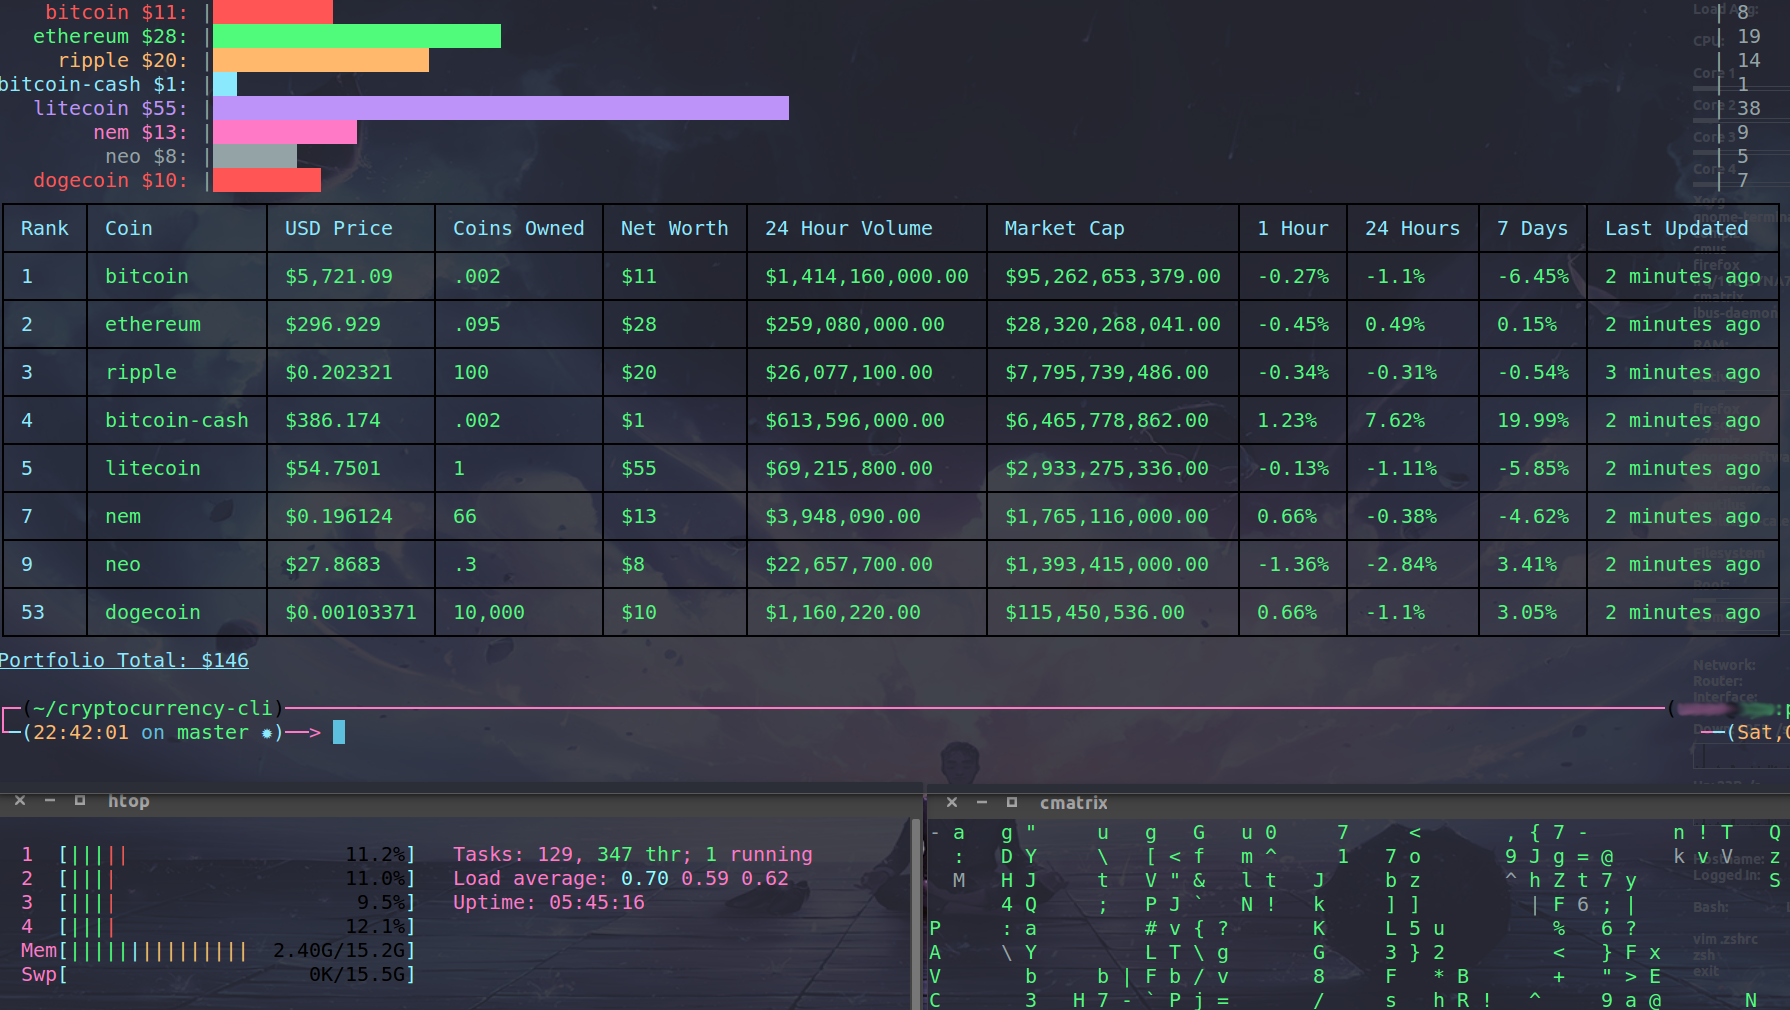 Cryptocurrency CLI